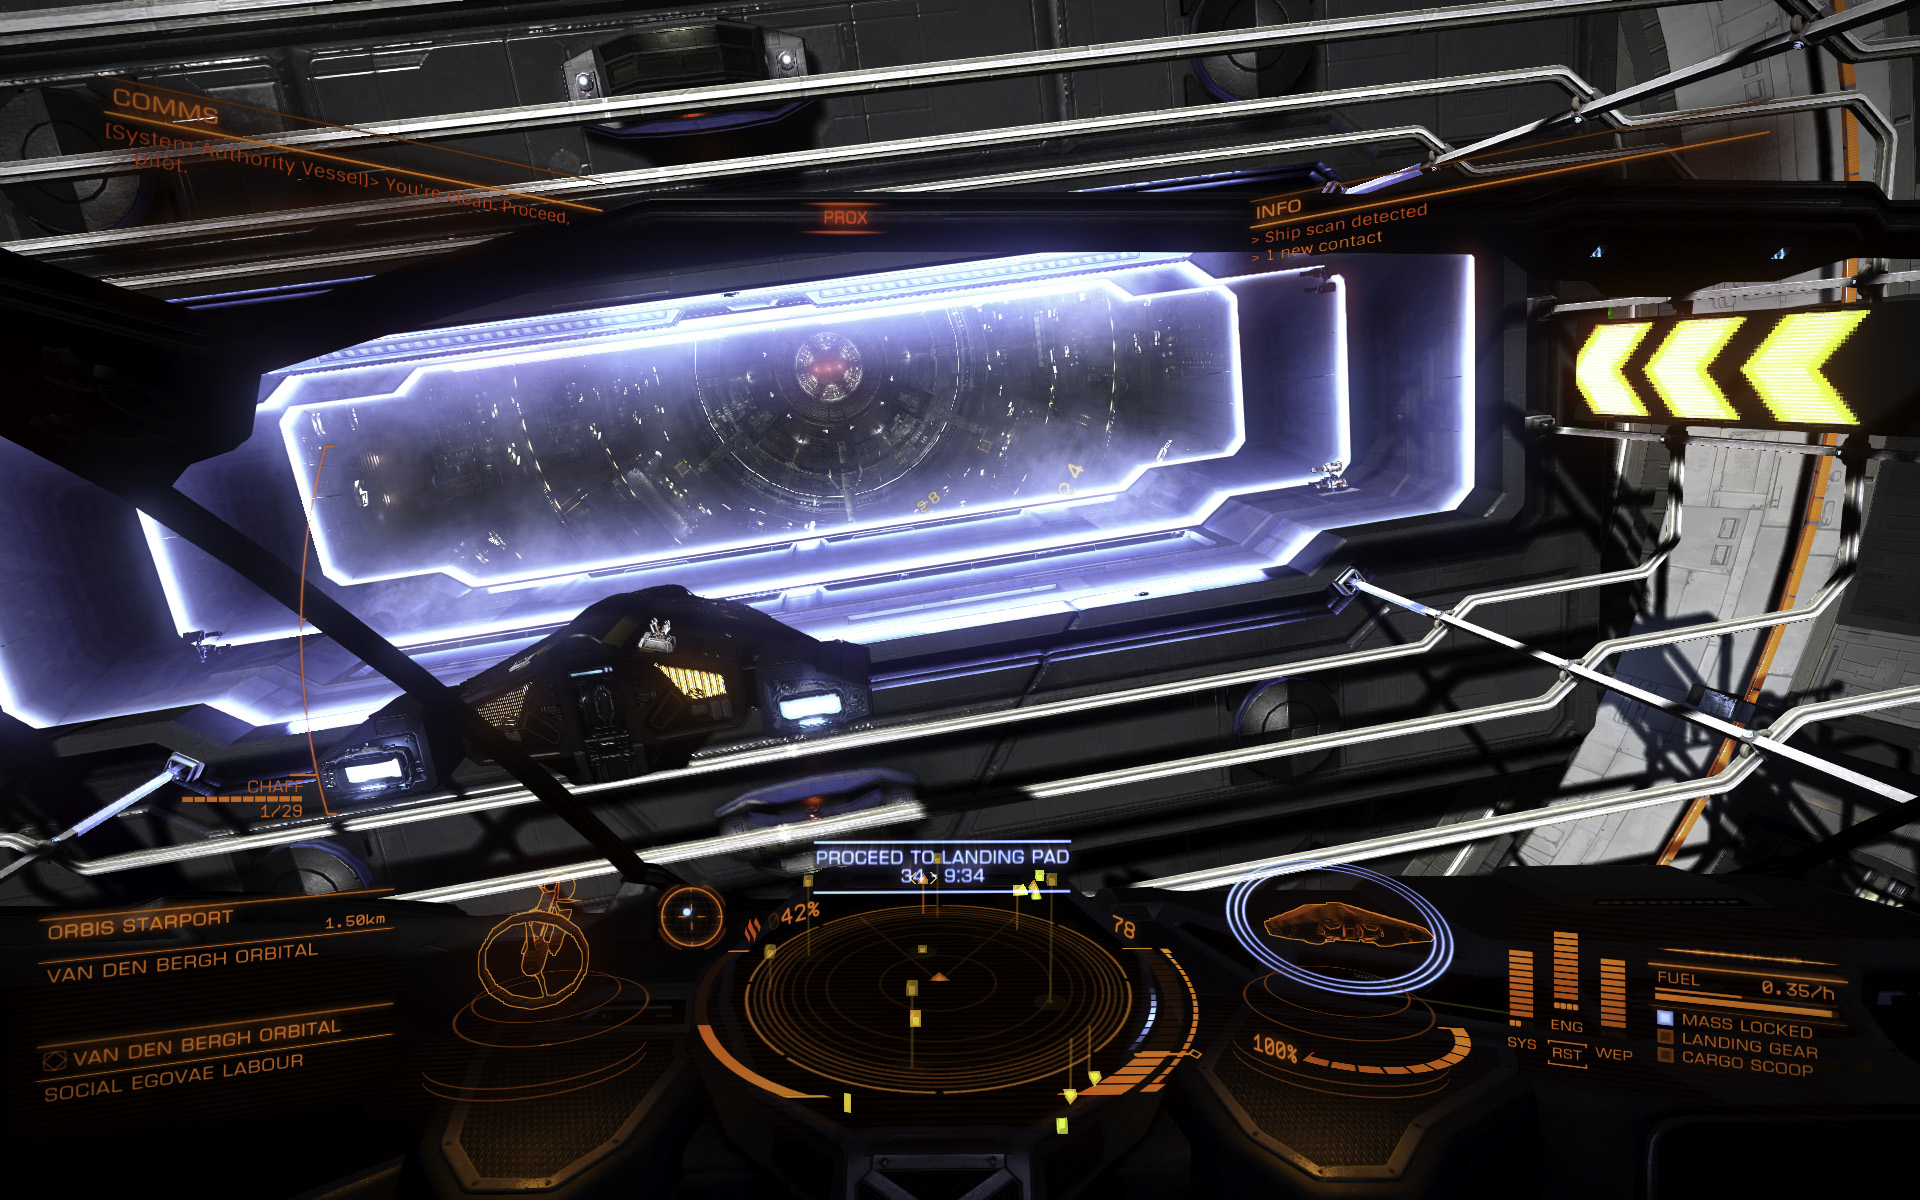 Elite: Dangerous beginner's guide: A screenshot showing the mail slot of a starport